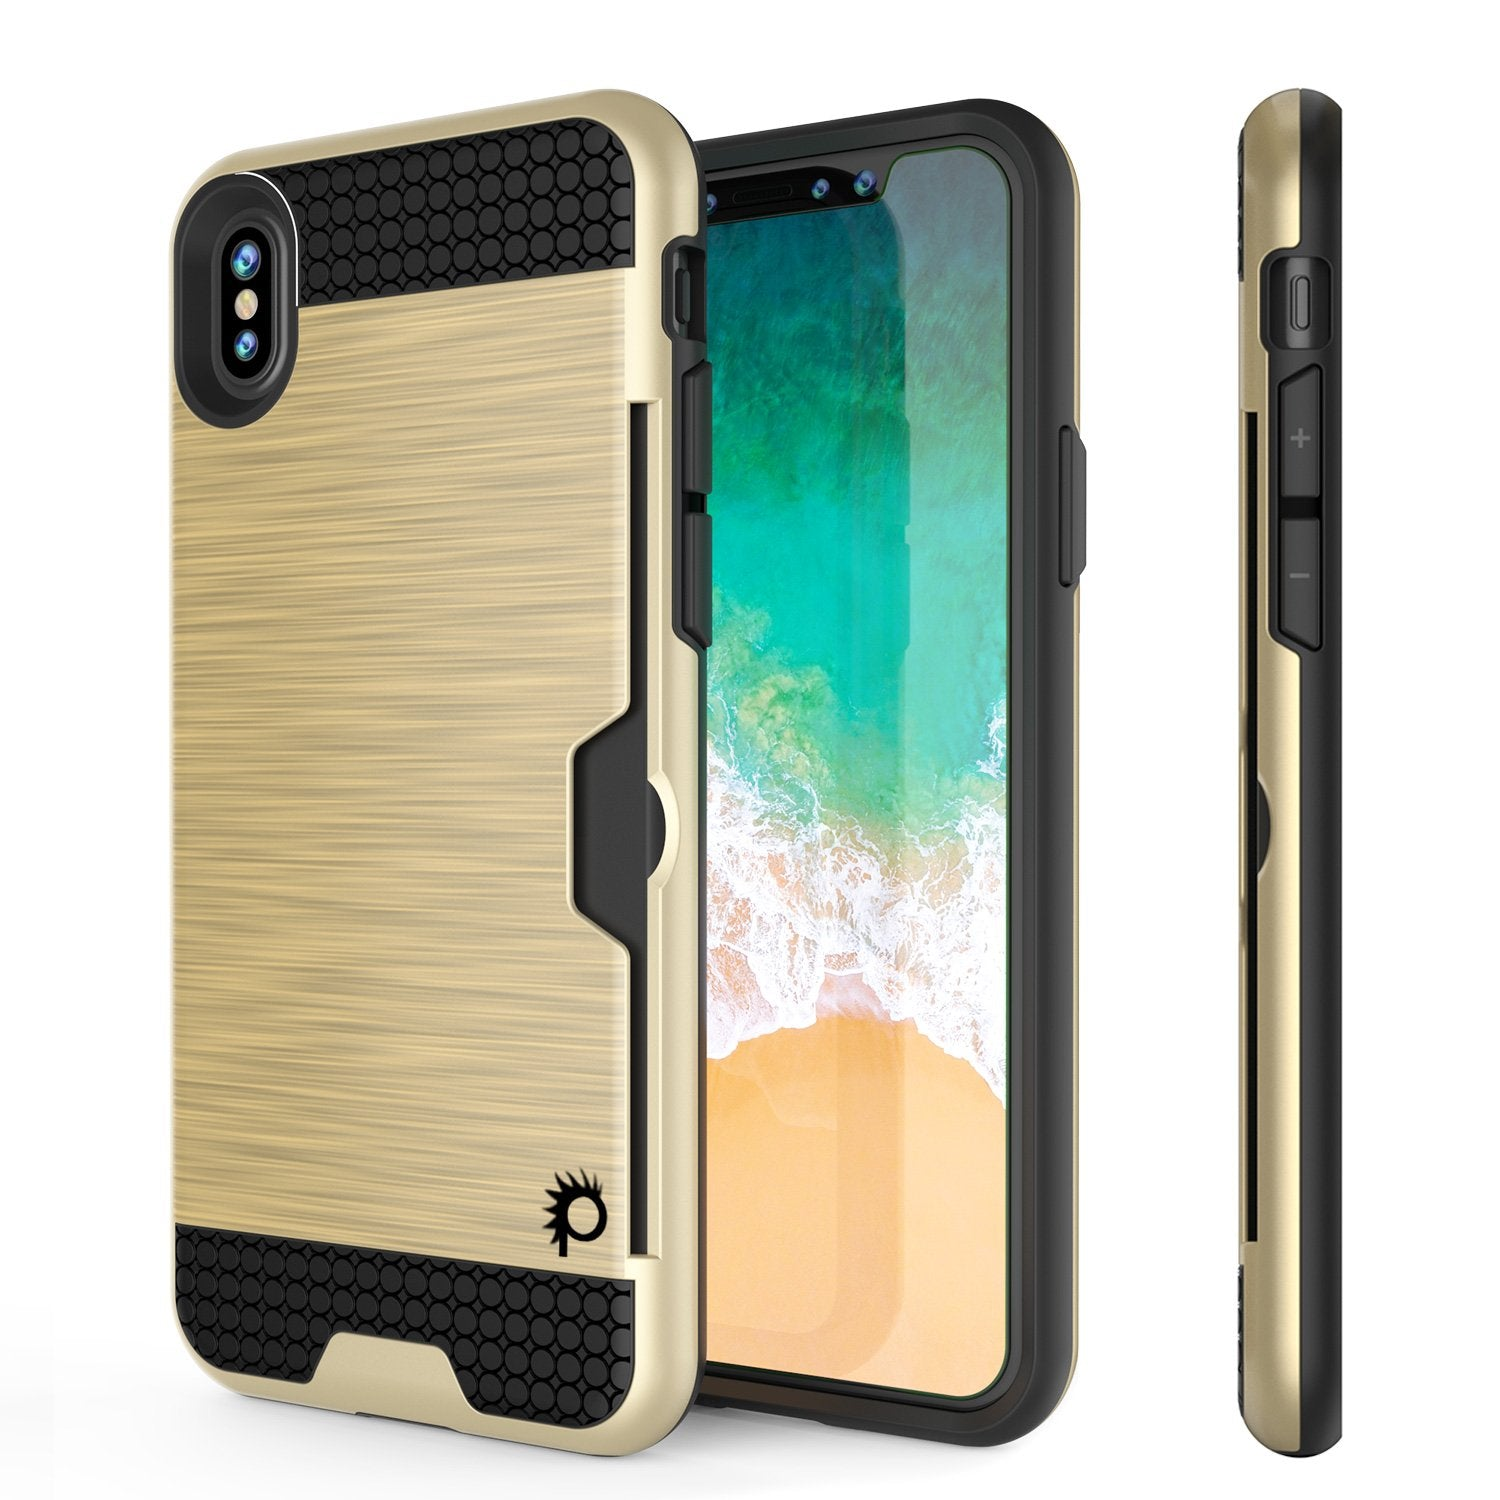 iPhone X Case, PUNKcase [SLOT Series] Slim Fit Dual-Layer Armor Cover & Tempered Glass PUNKSHIELD Screen Protector for Apple iPhone X [Gold]